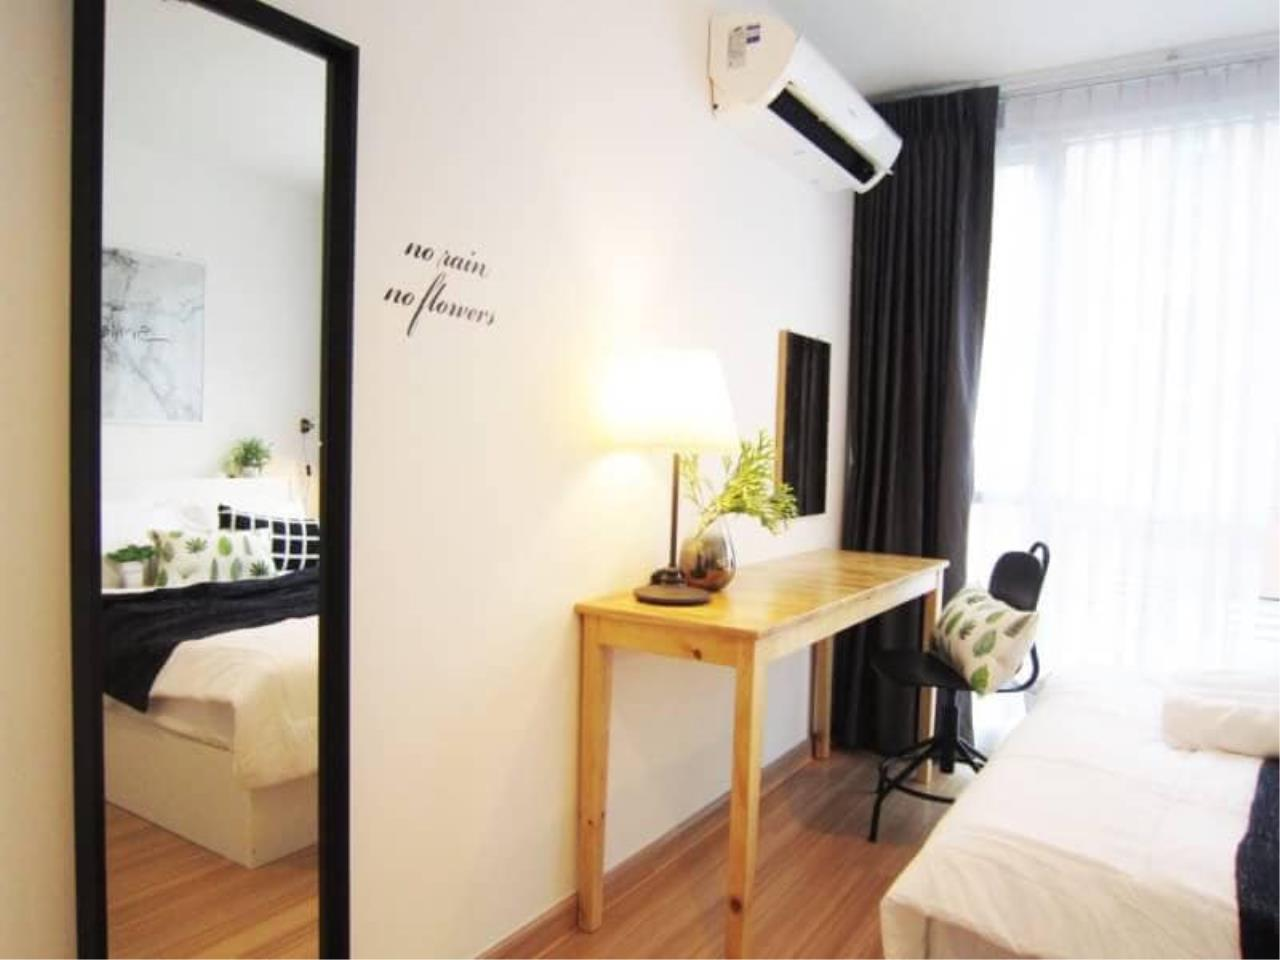 Agent Thawanrat Agency's Condo for rental Chateau In Town Ratchada 19 Near MRT.Ratchadaphisek 1 bedroom,1 bathroom. size 41 sqm. fully furnished Ready to move in 7